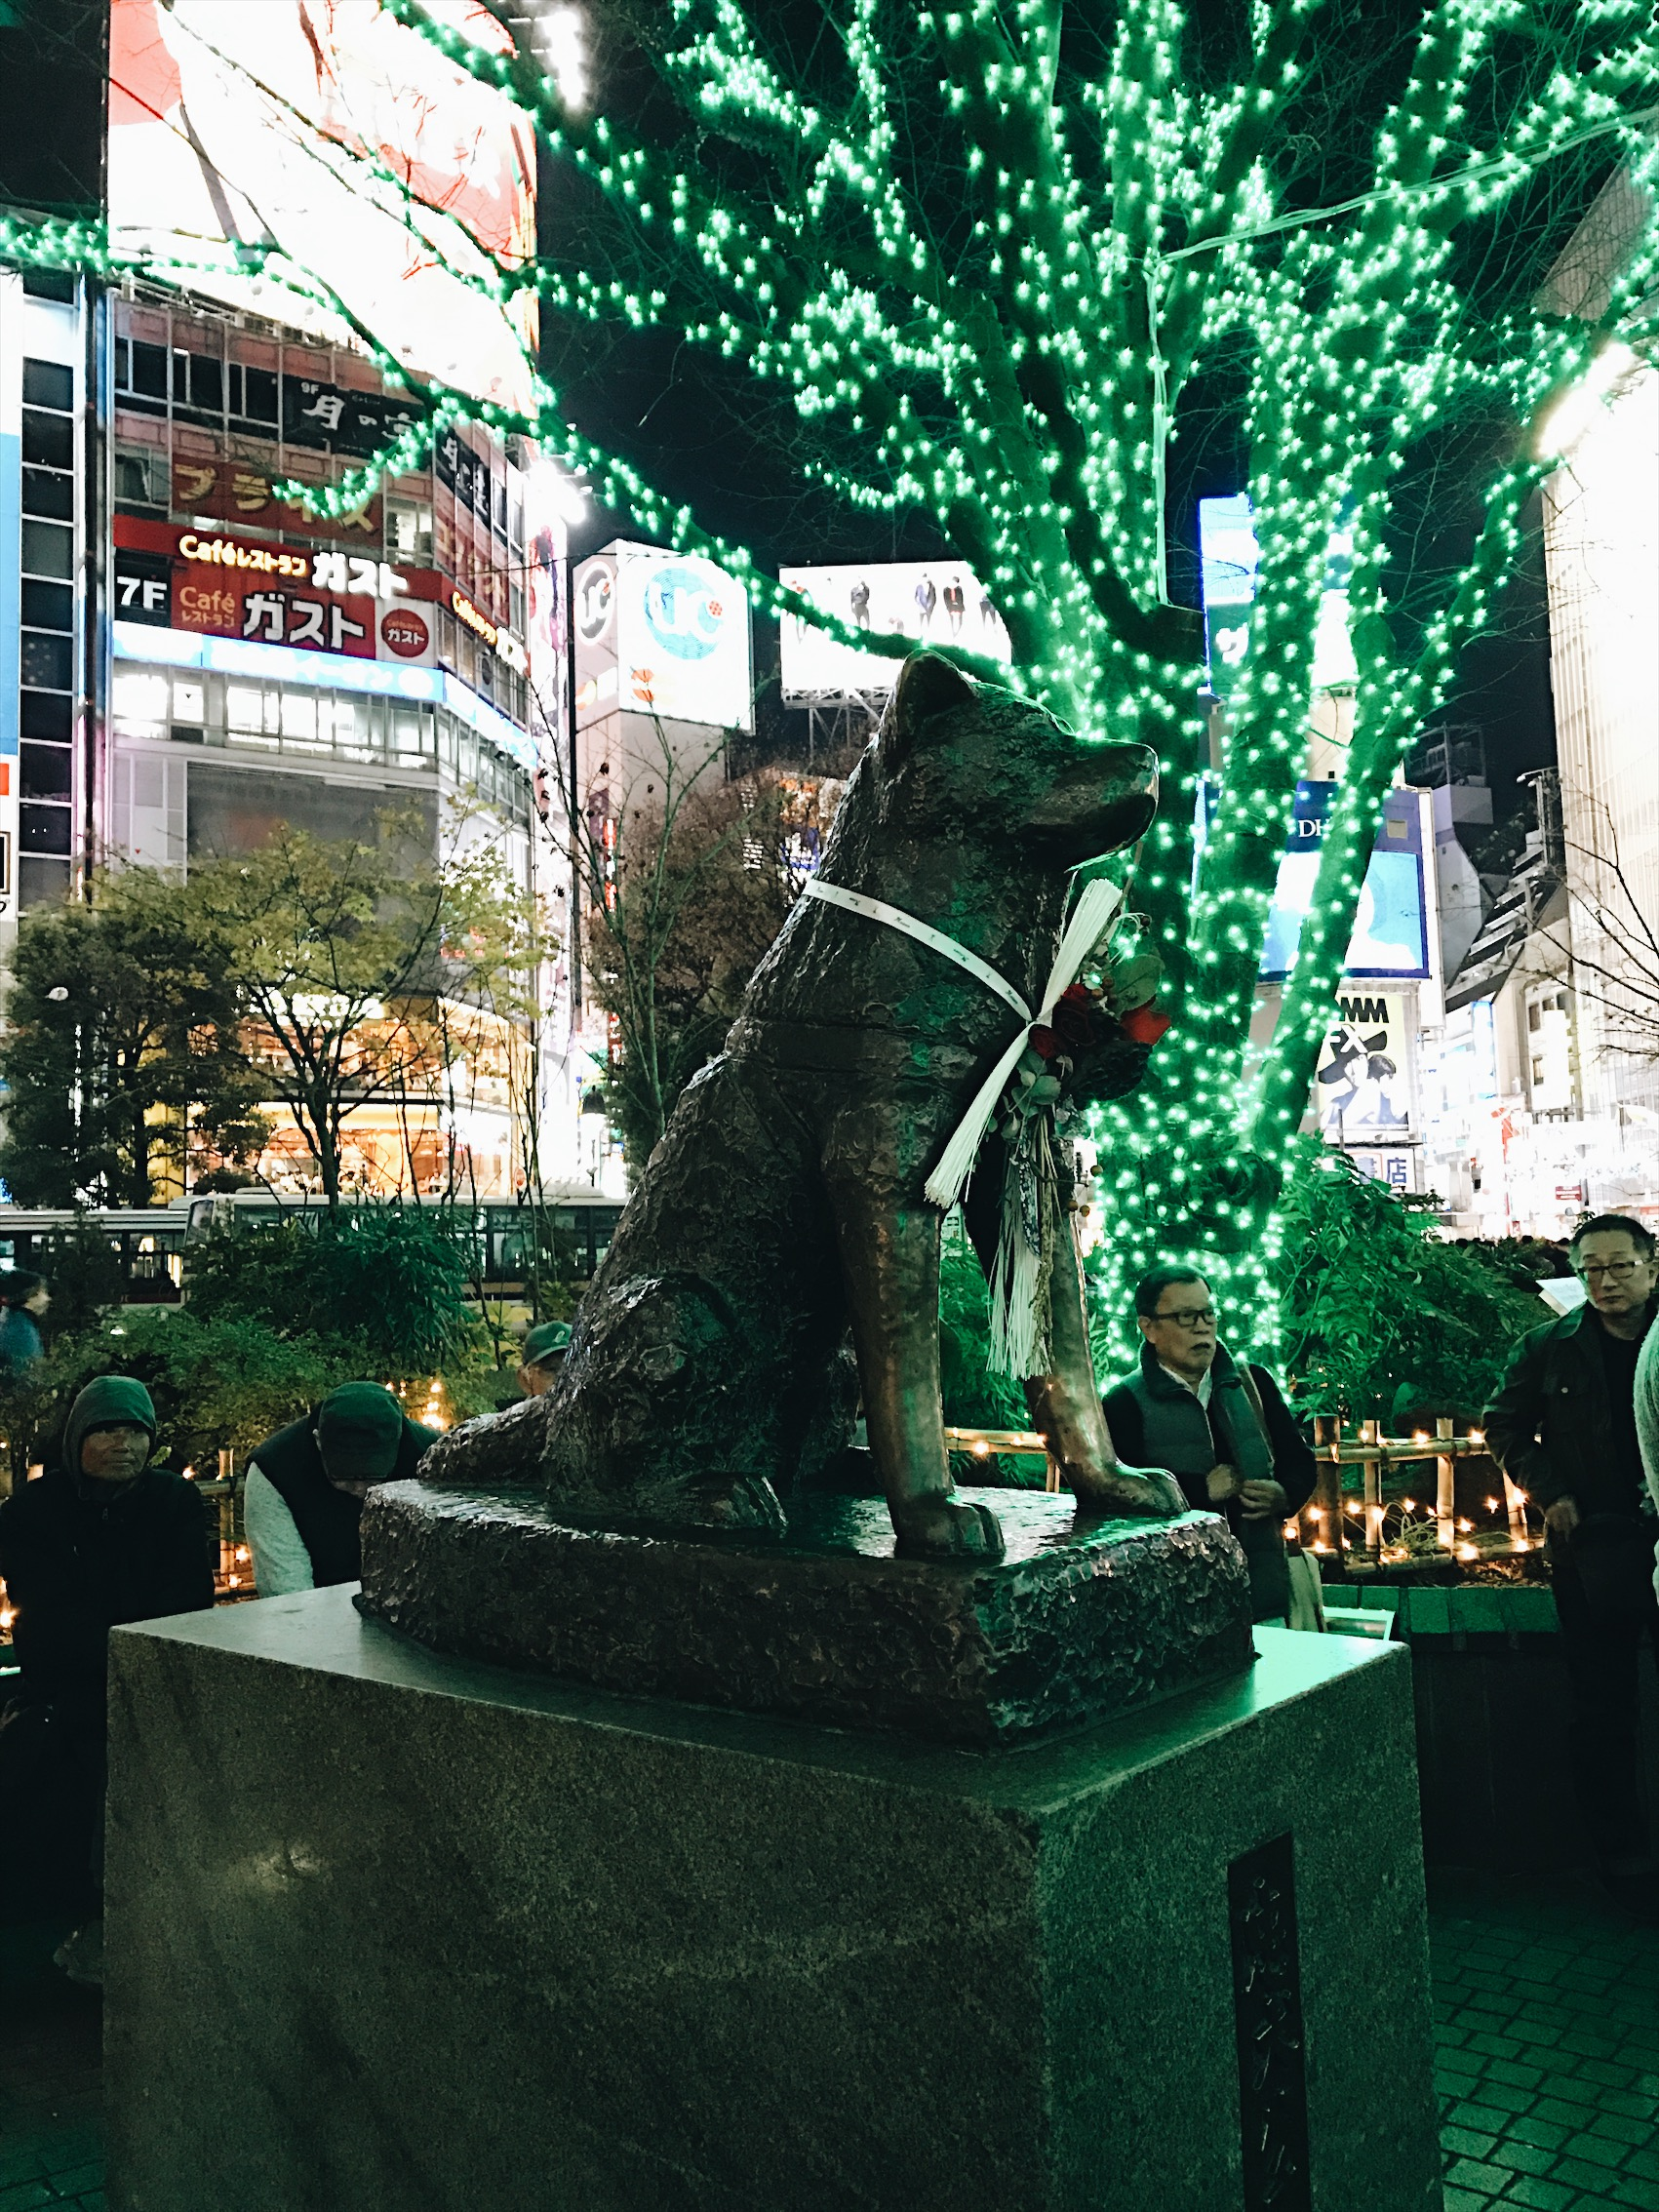 Finally get to see the Hachiko status !!! My hero.